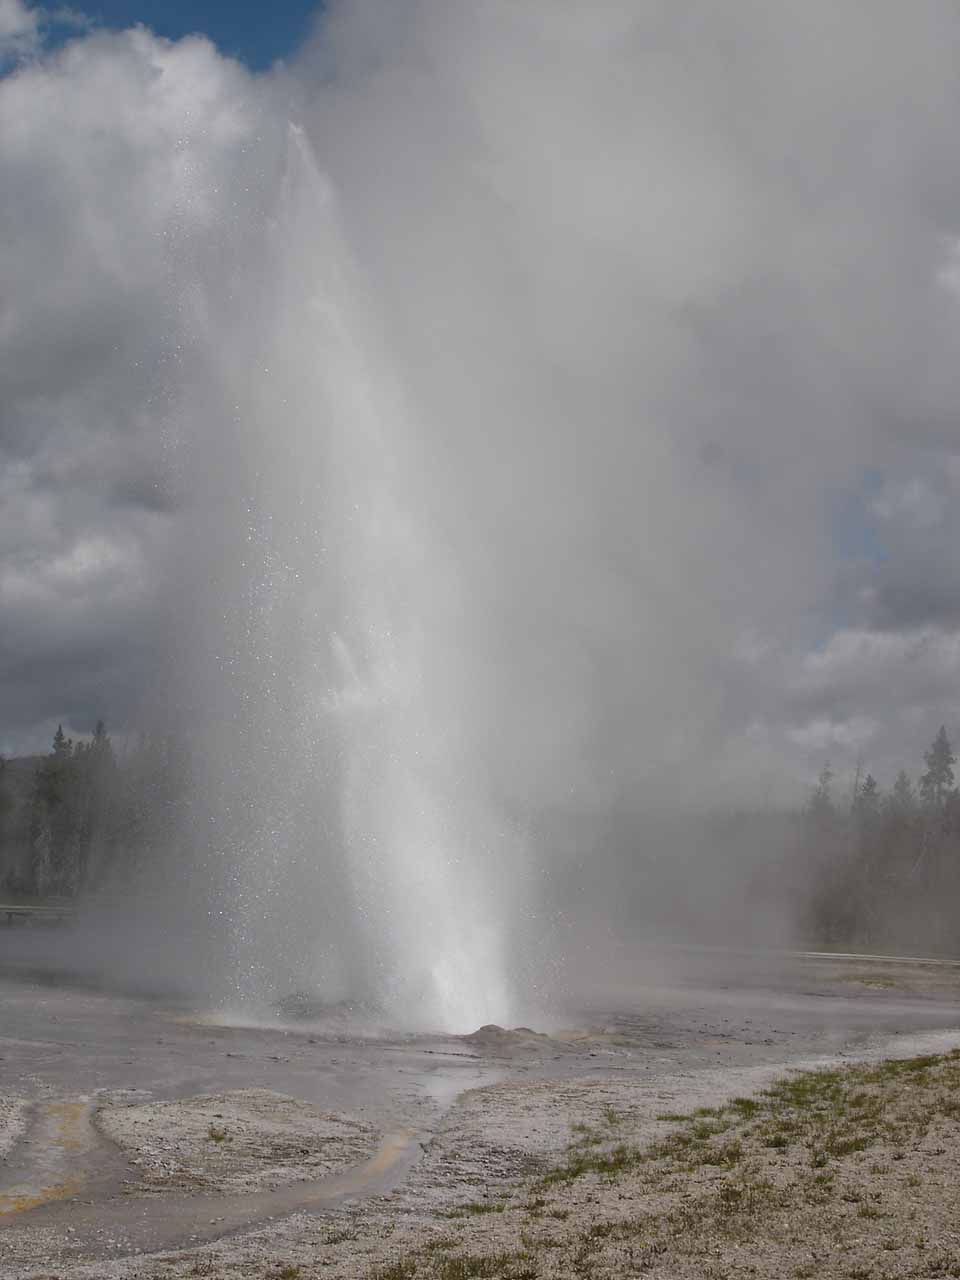 We also saw another predictable geyser in the Upper Geyser Basin called the Daisy Geyser